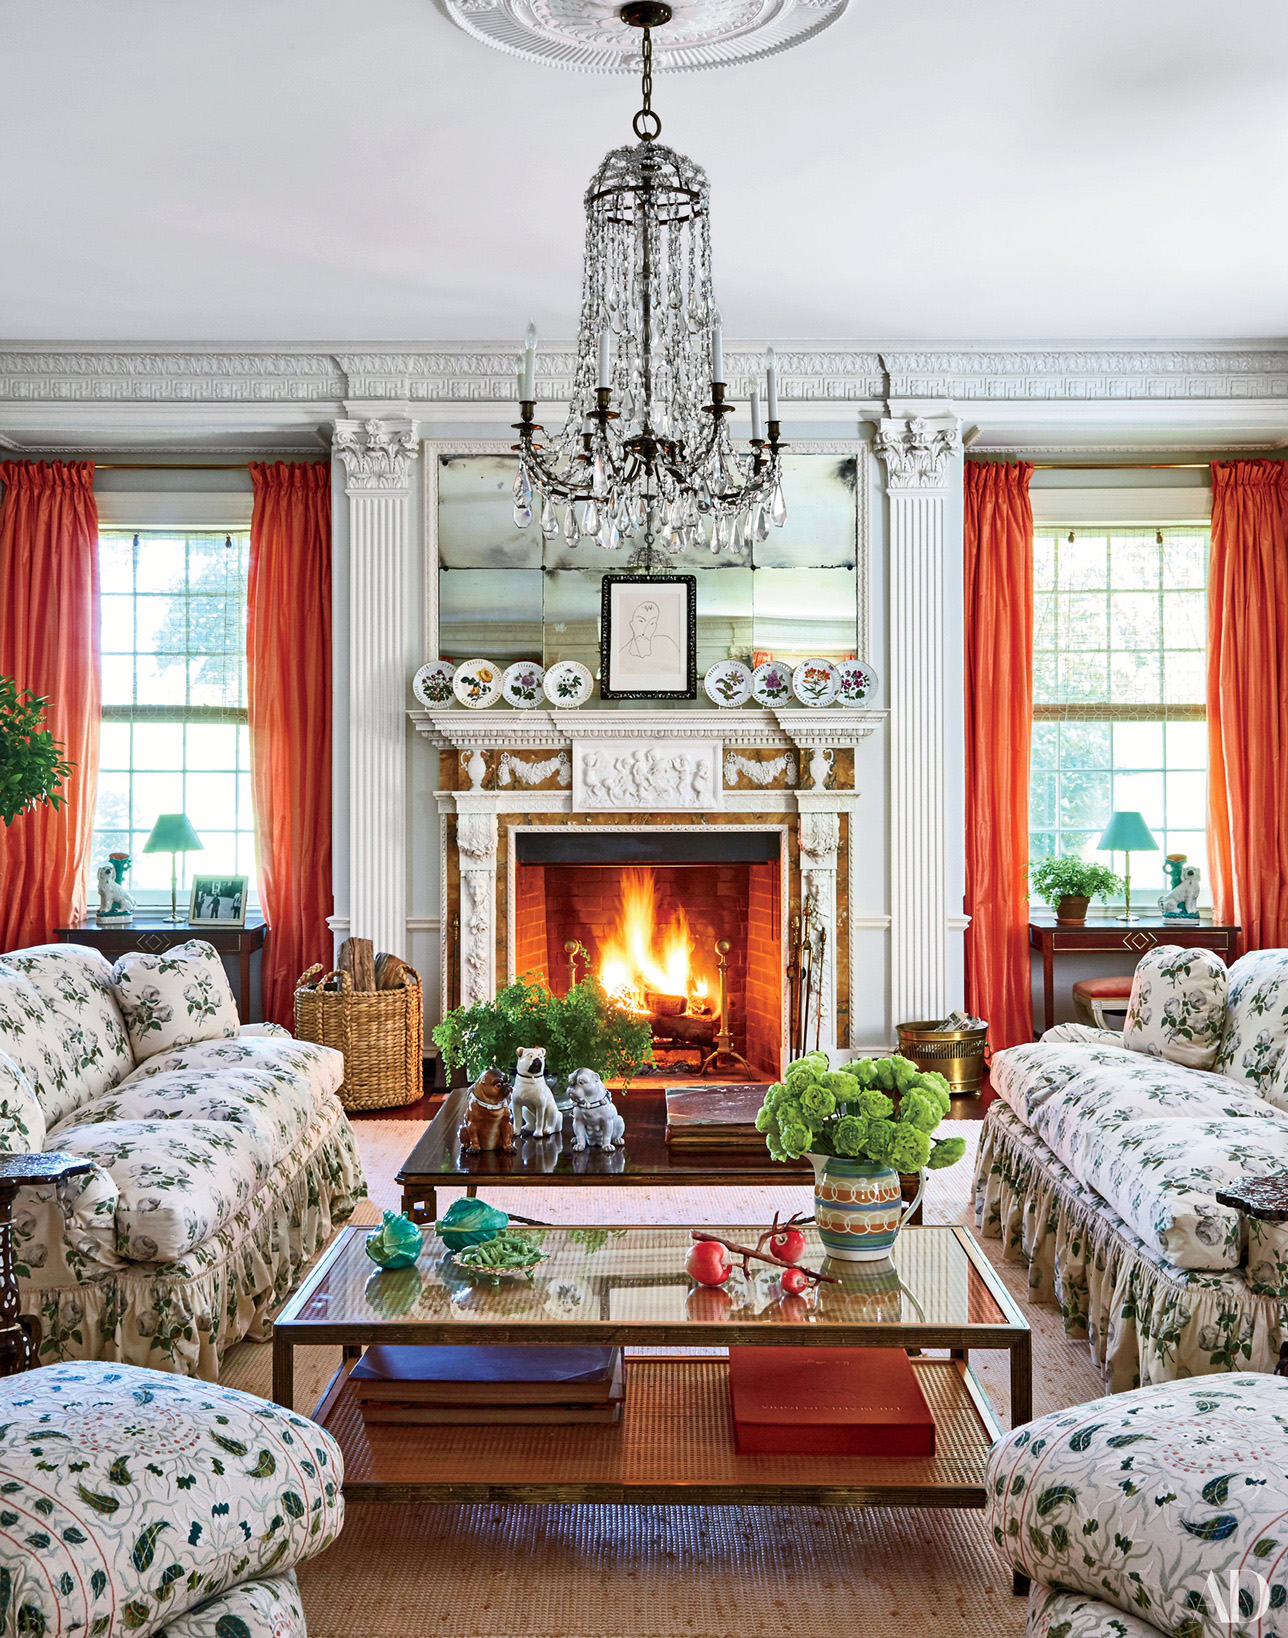 tory burch for october issue of architectural digest